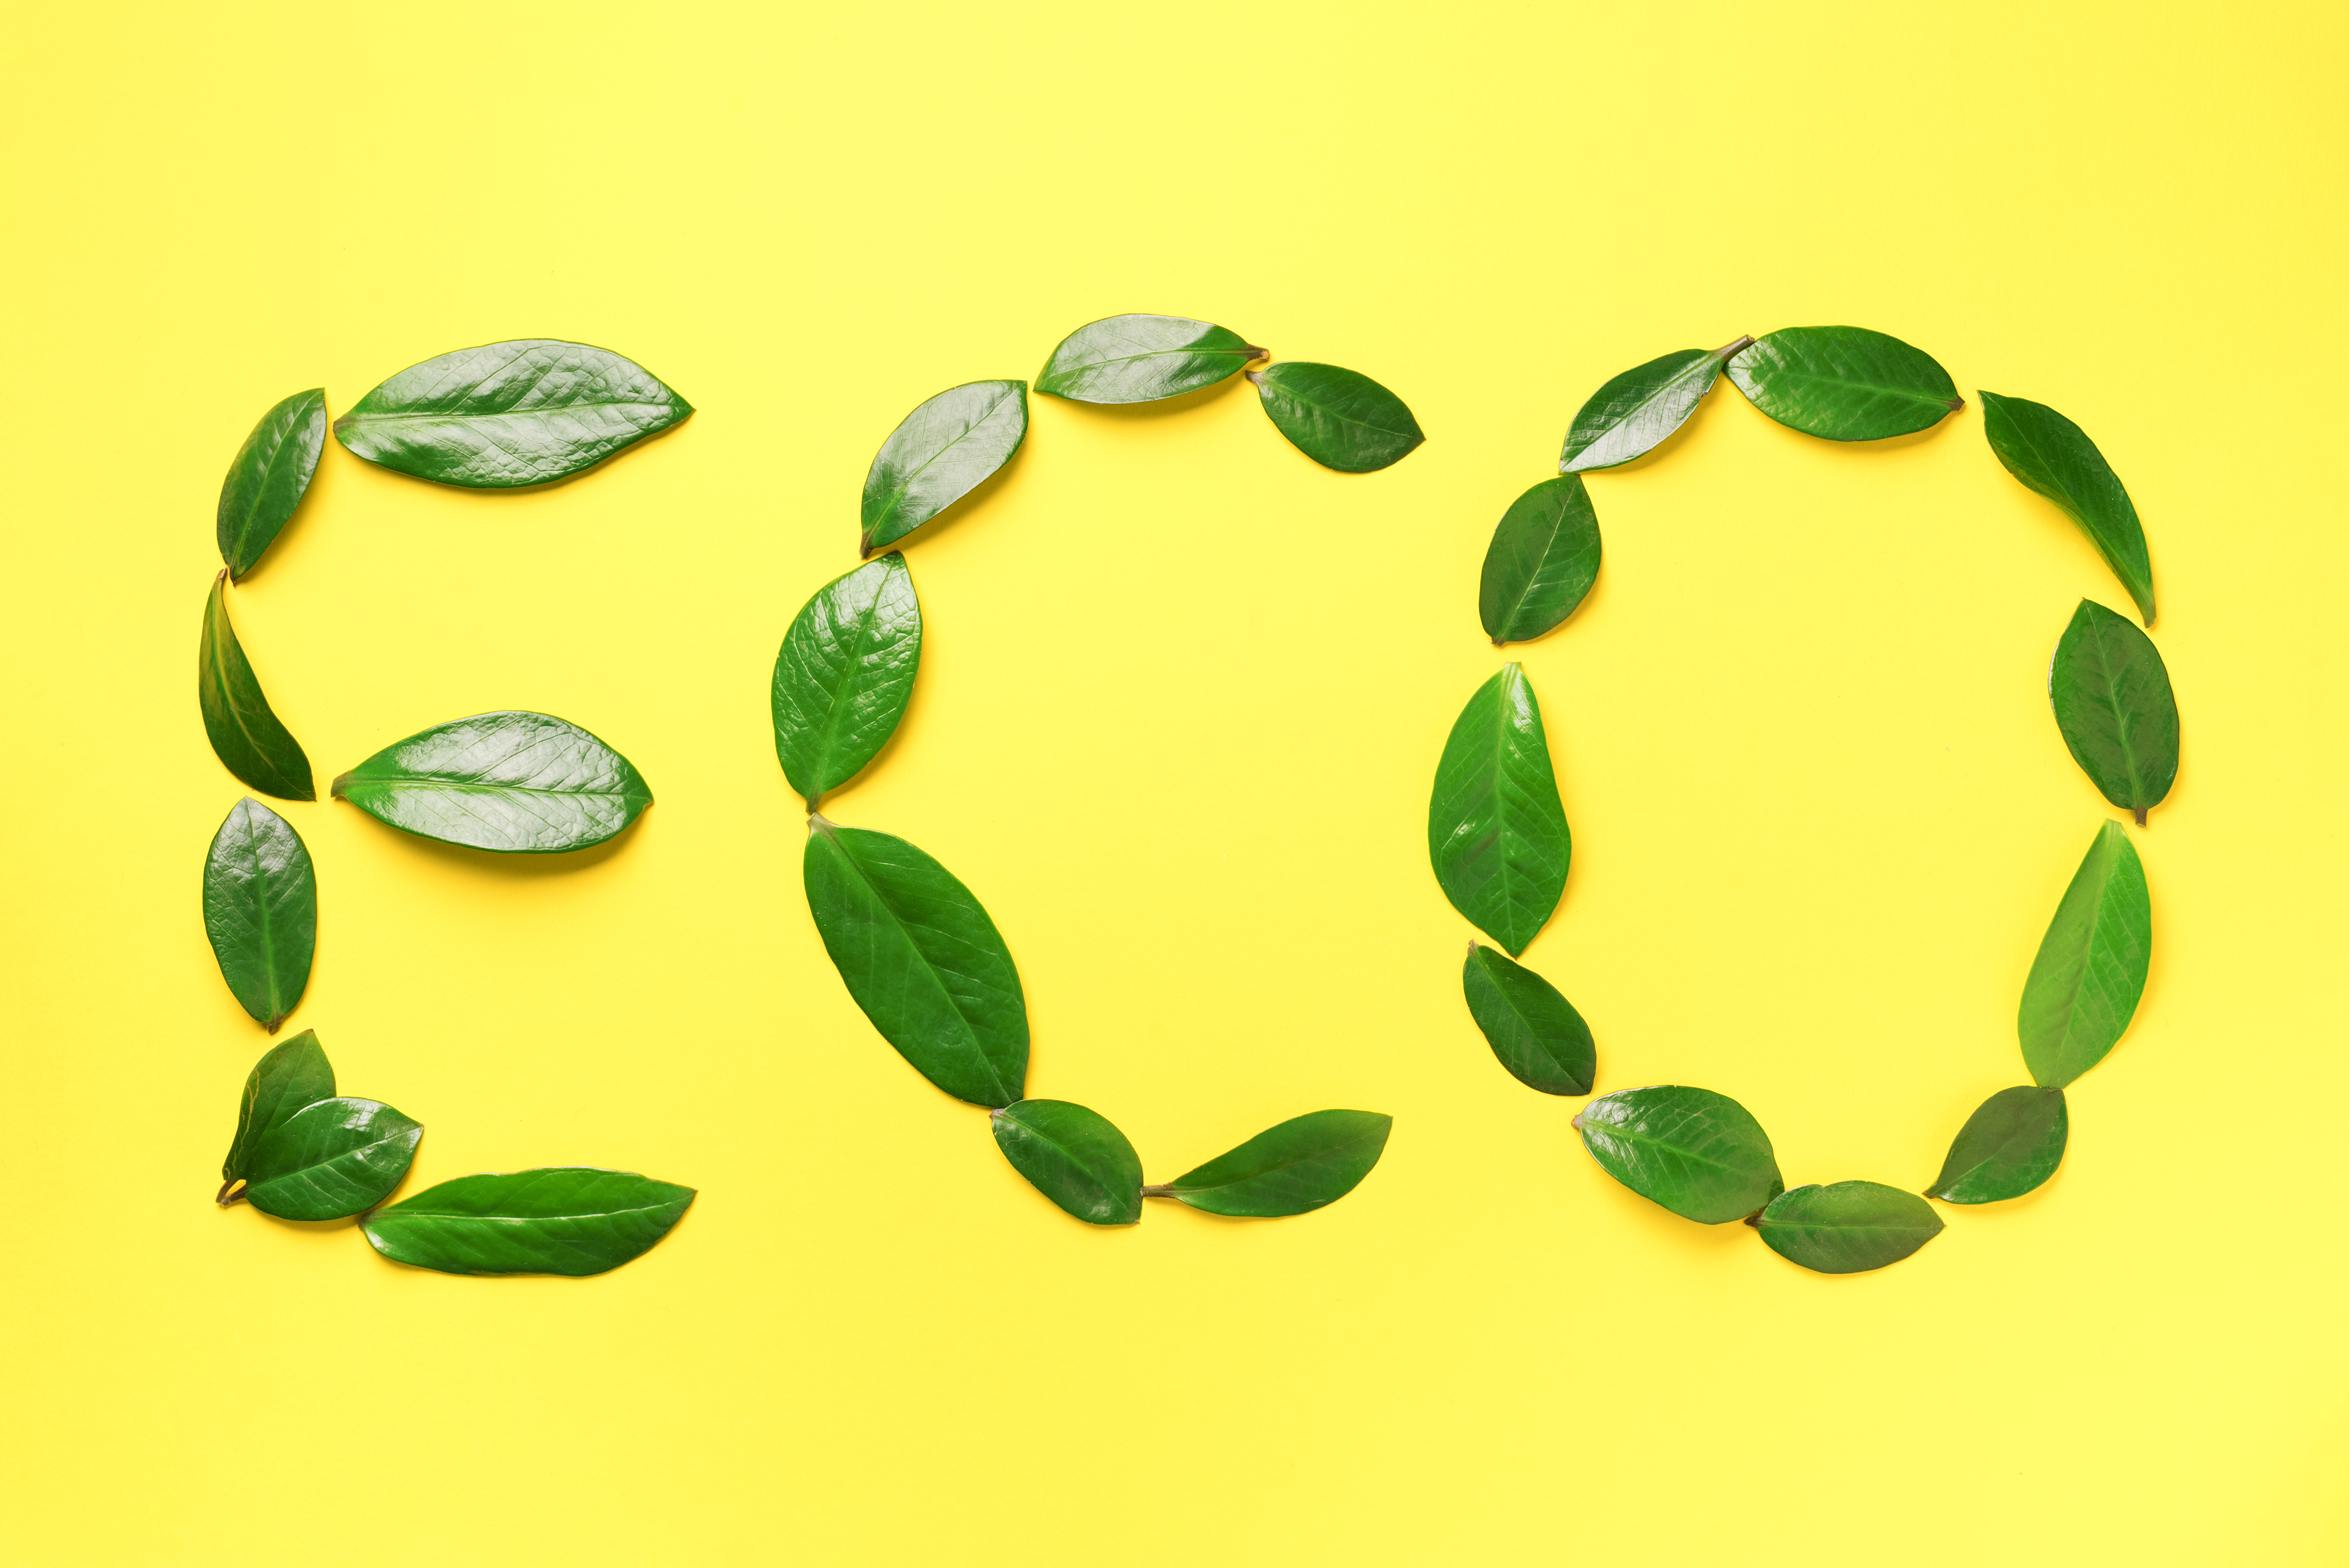 word-eco-made-of-green-leaves-on-yellow-background-B7FS9UR